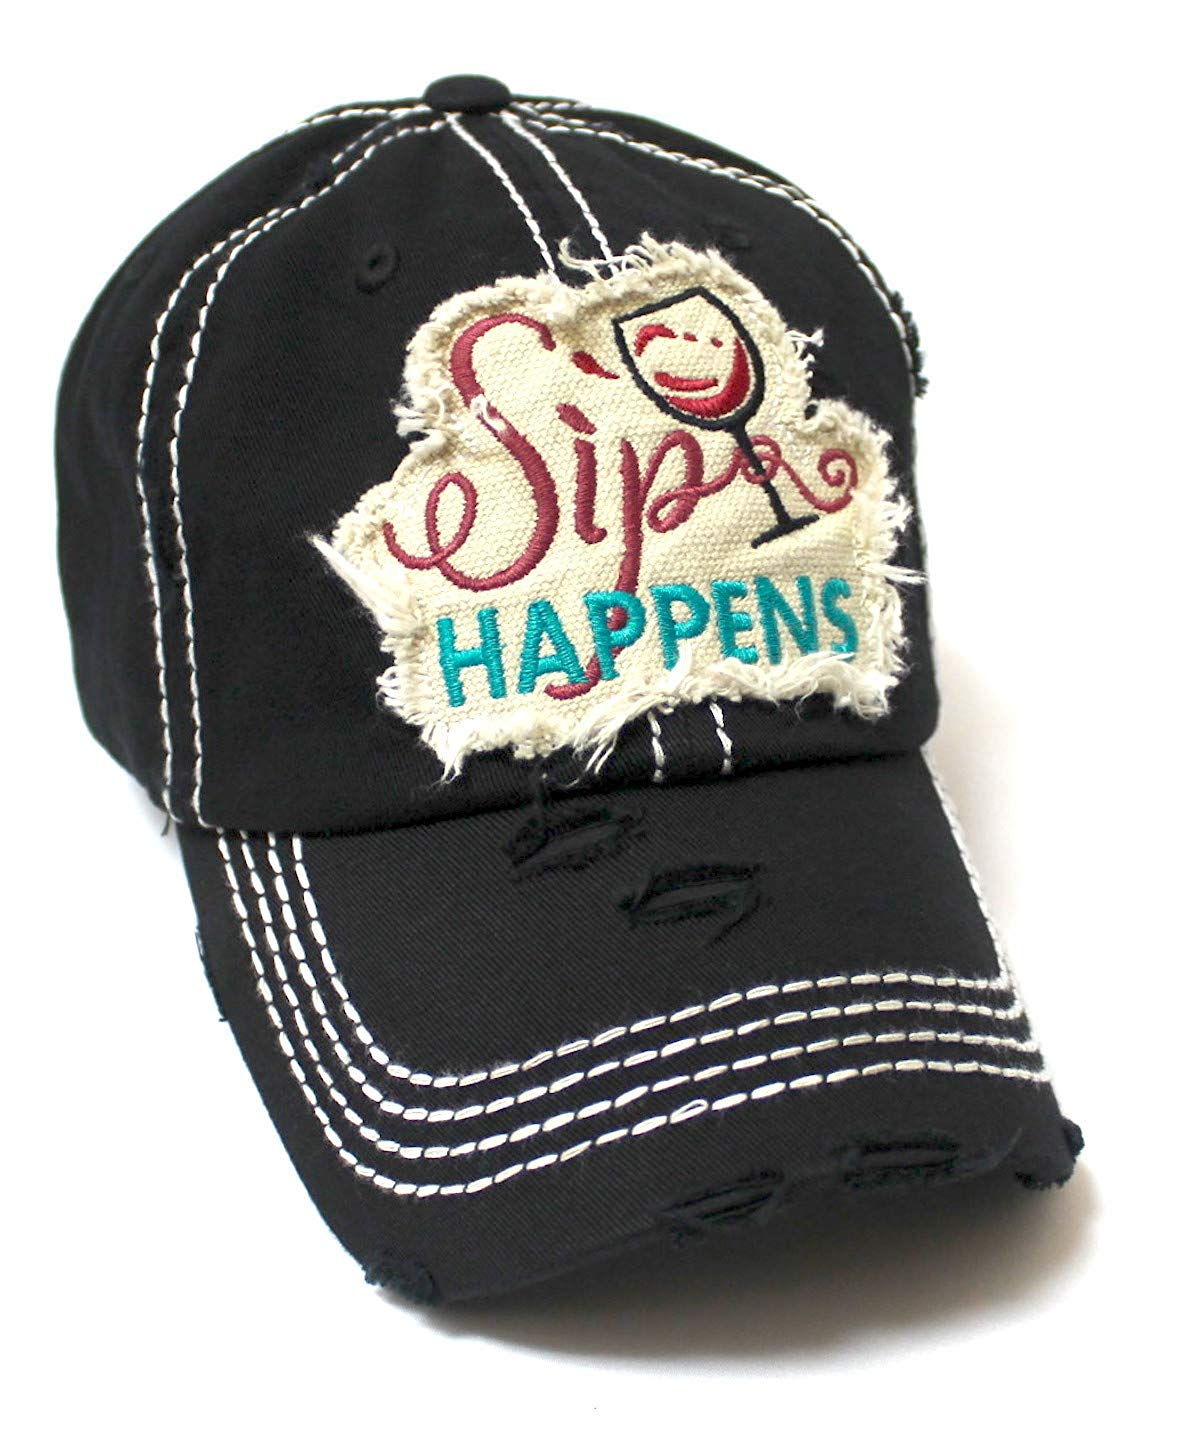 CAPS 'N VINTAGE Women's Baseball Cap Wine Glass Sip Happens Monogram Embroidery Hat, Black - Caps 'N Vintage